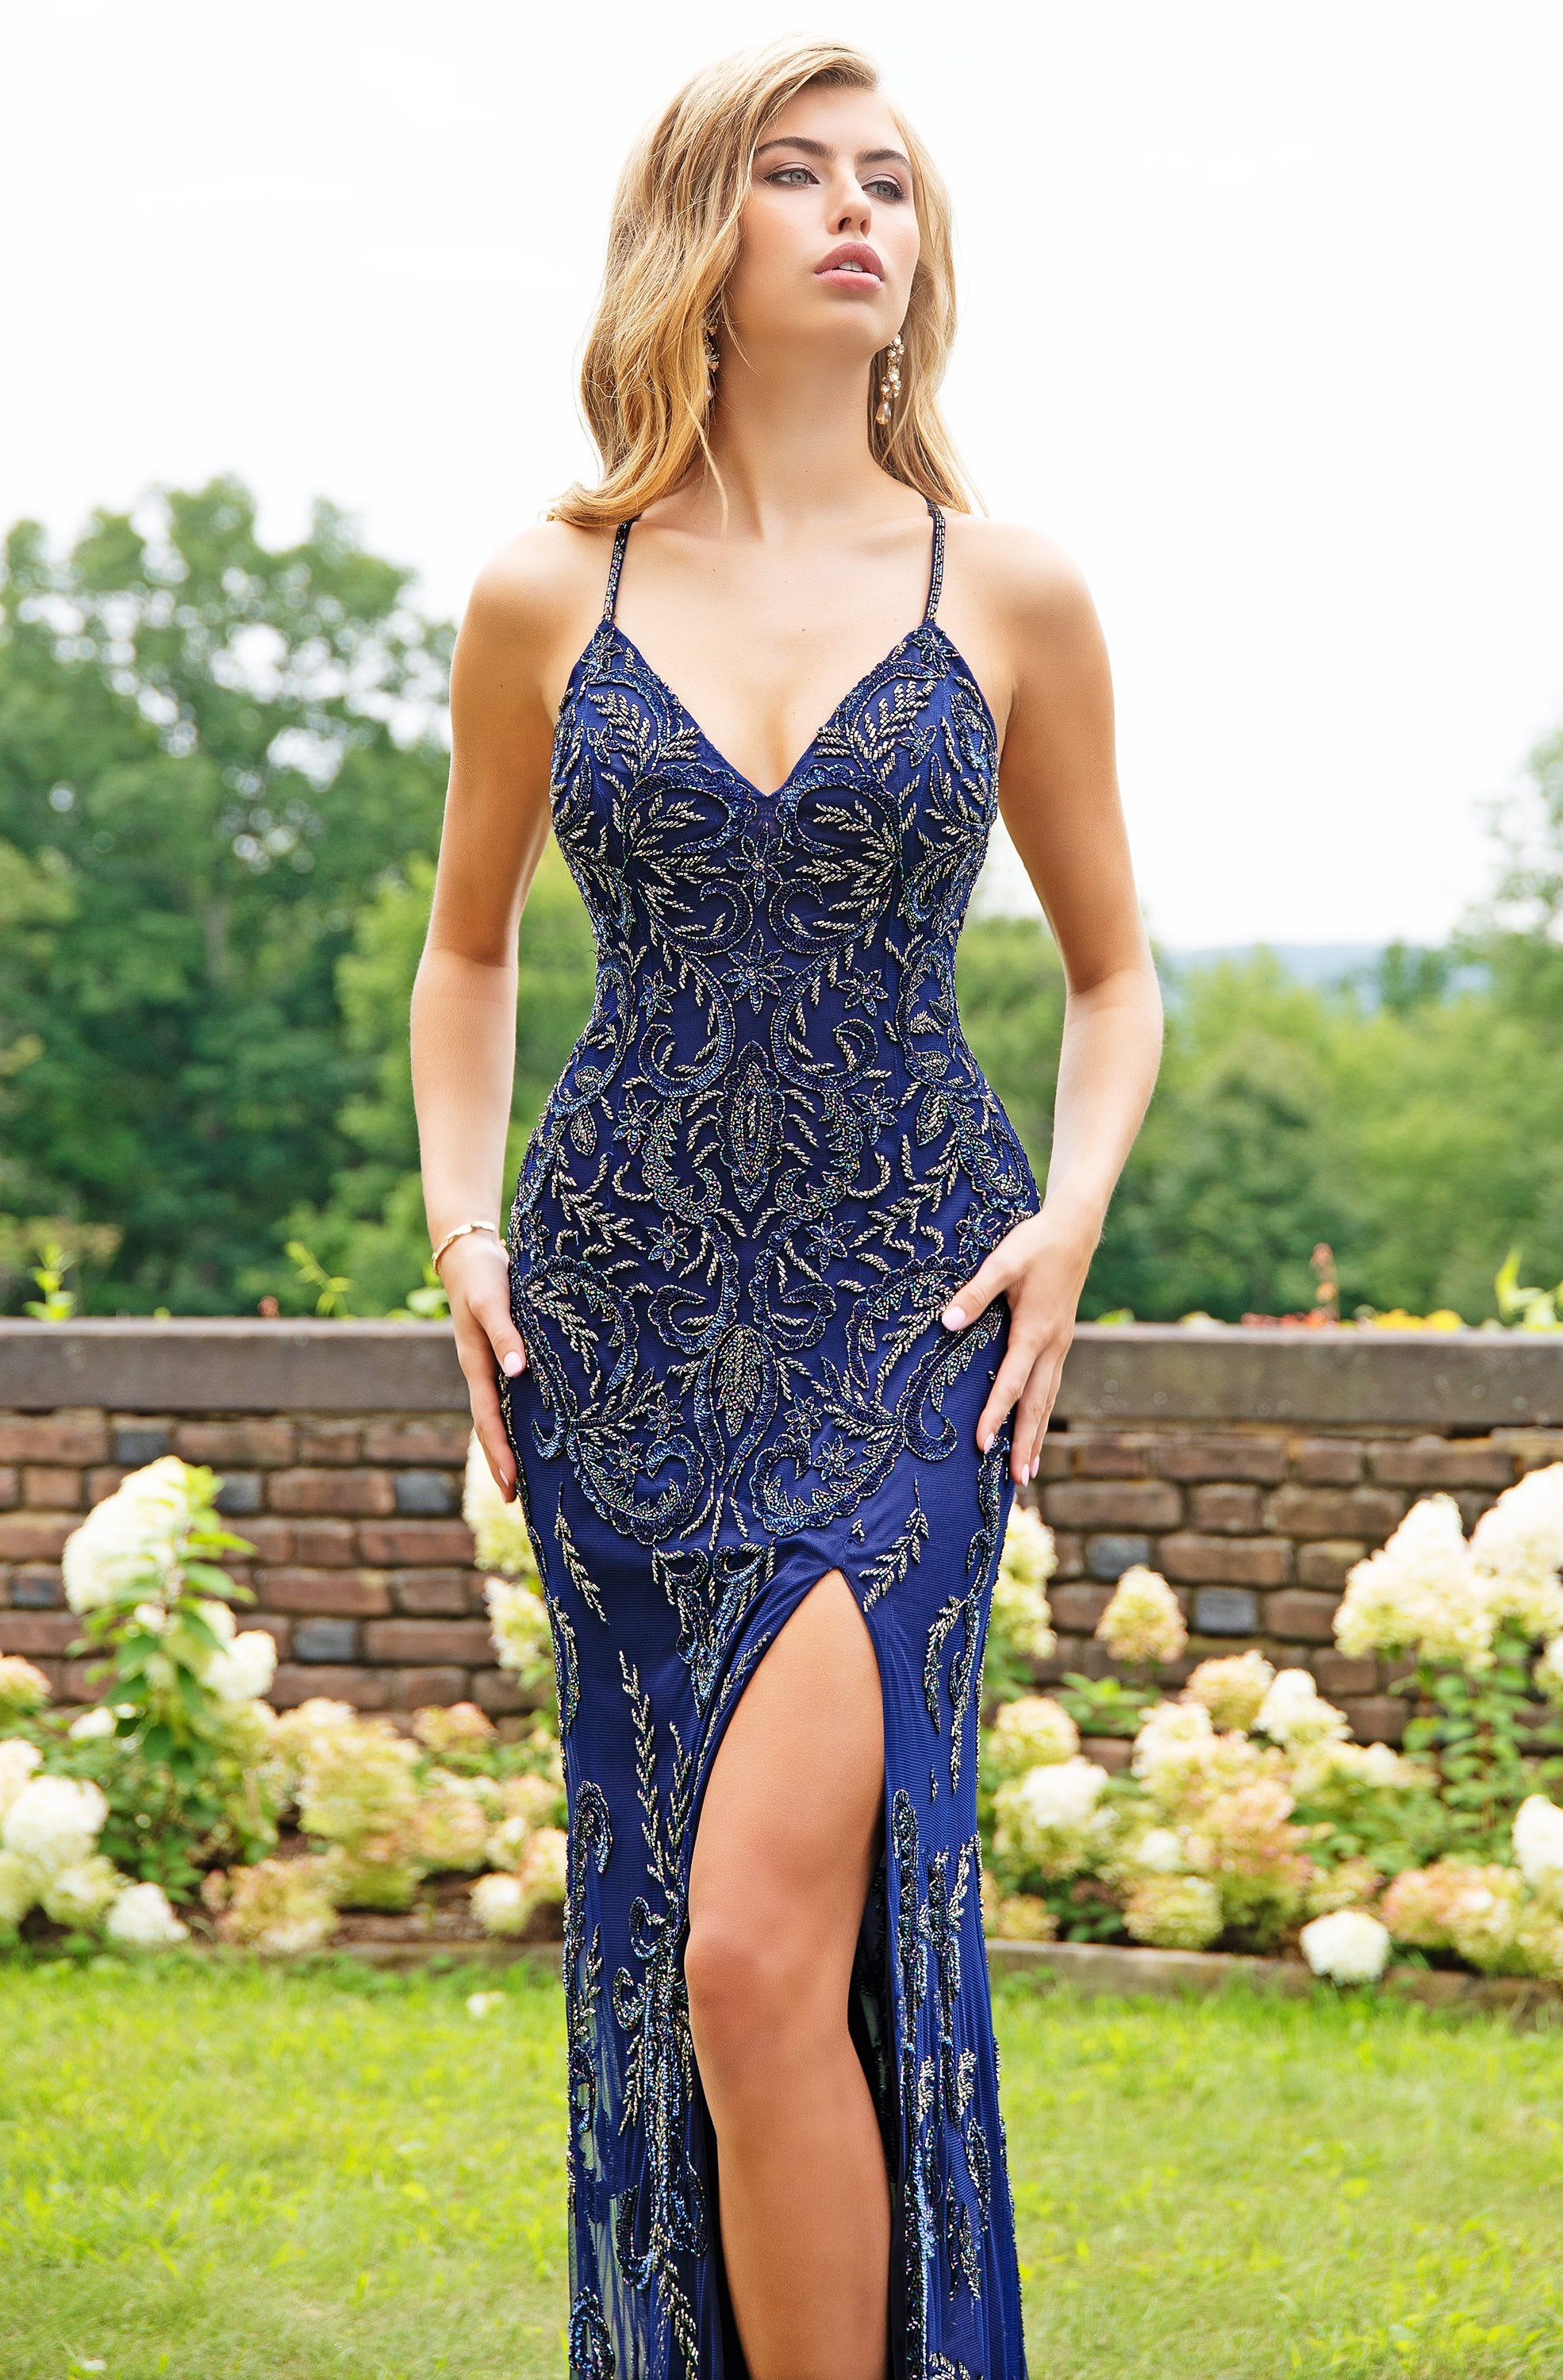 Primavera Couture - 3233 Embellished Vneck Sheath Dress With Open Back In Blue